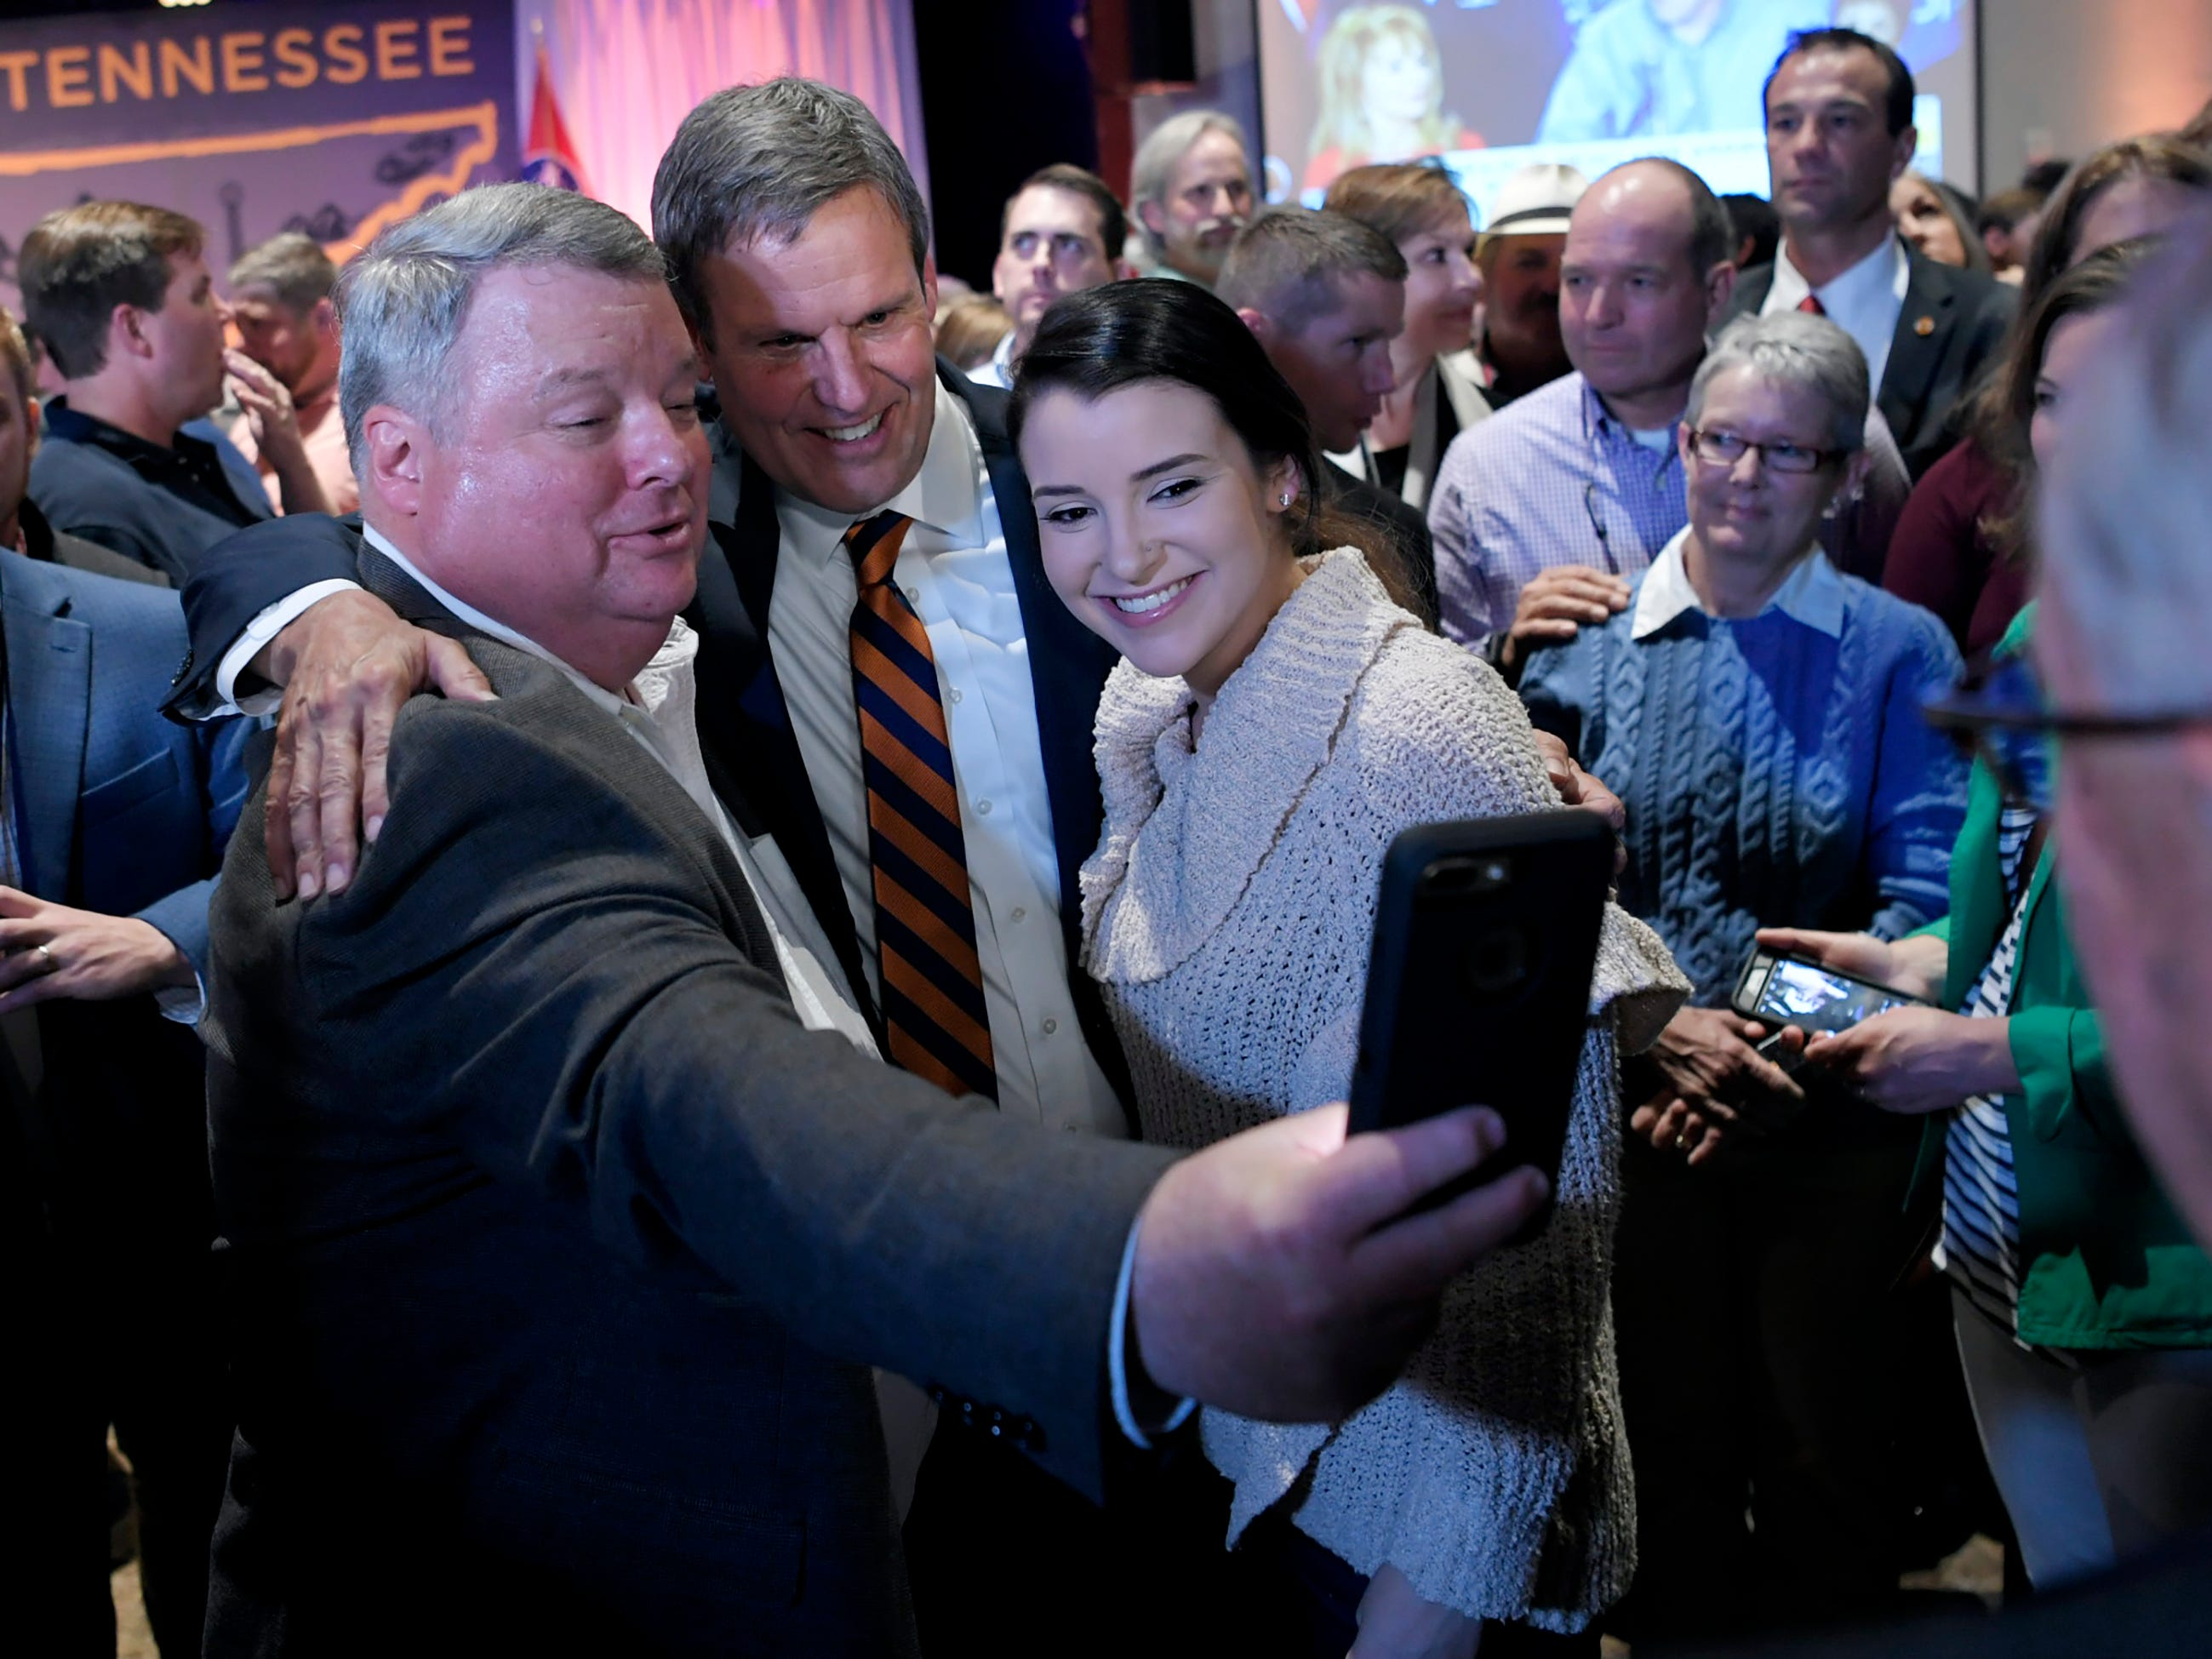 Supporters take a selfie with Governor-elect Bill Lee at his election party Tuesday, Nov. 6, 2018, in Franklin, Tenn.